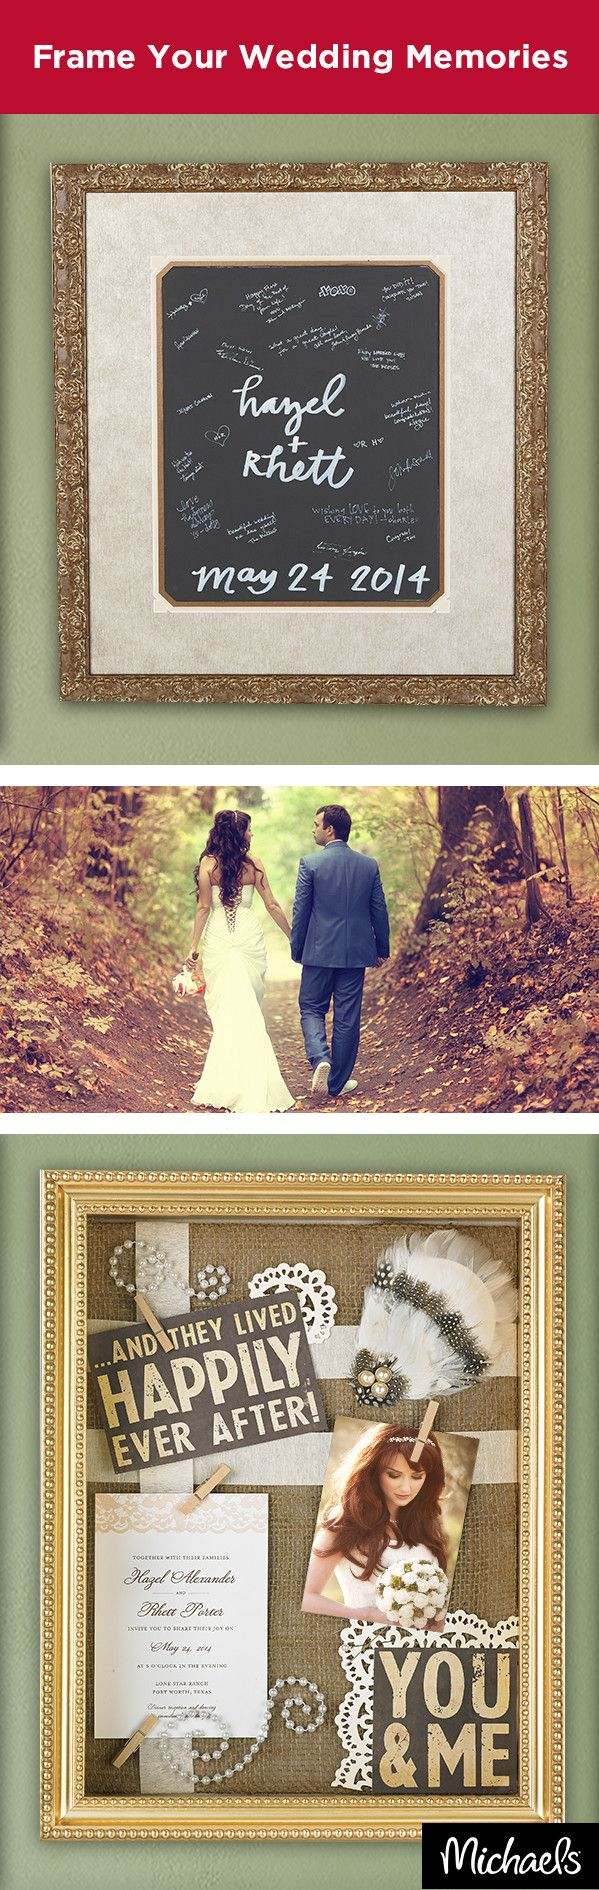 761 Best Michaels Weddings Images On Pinterest